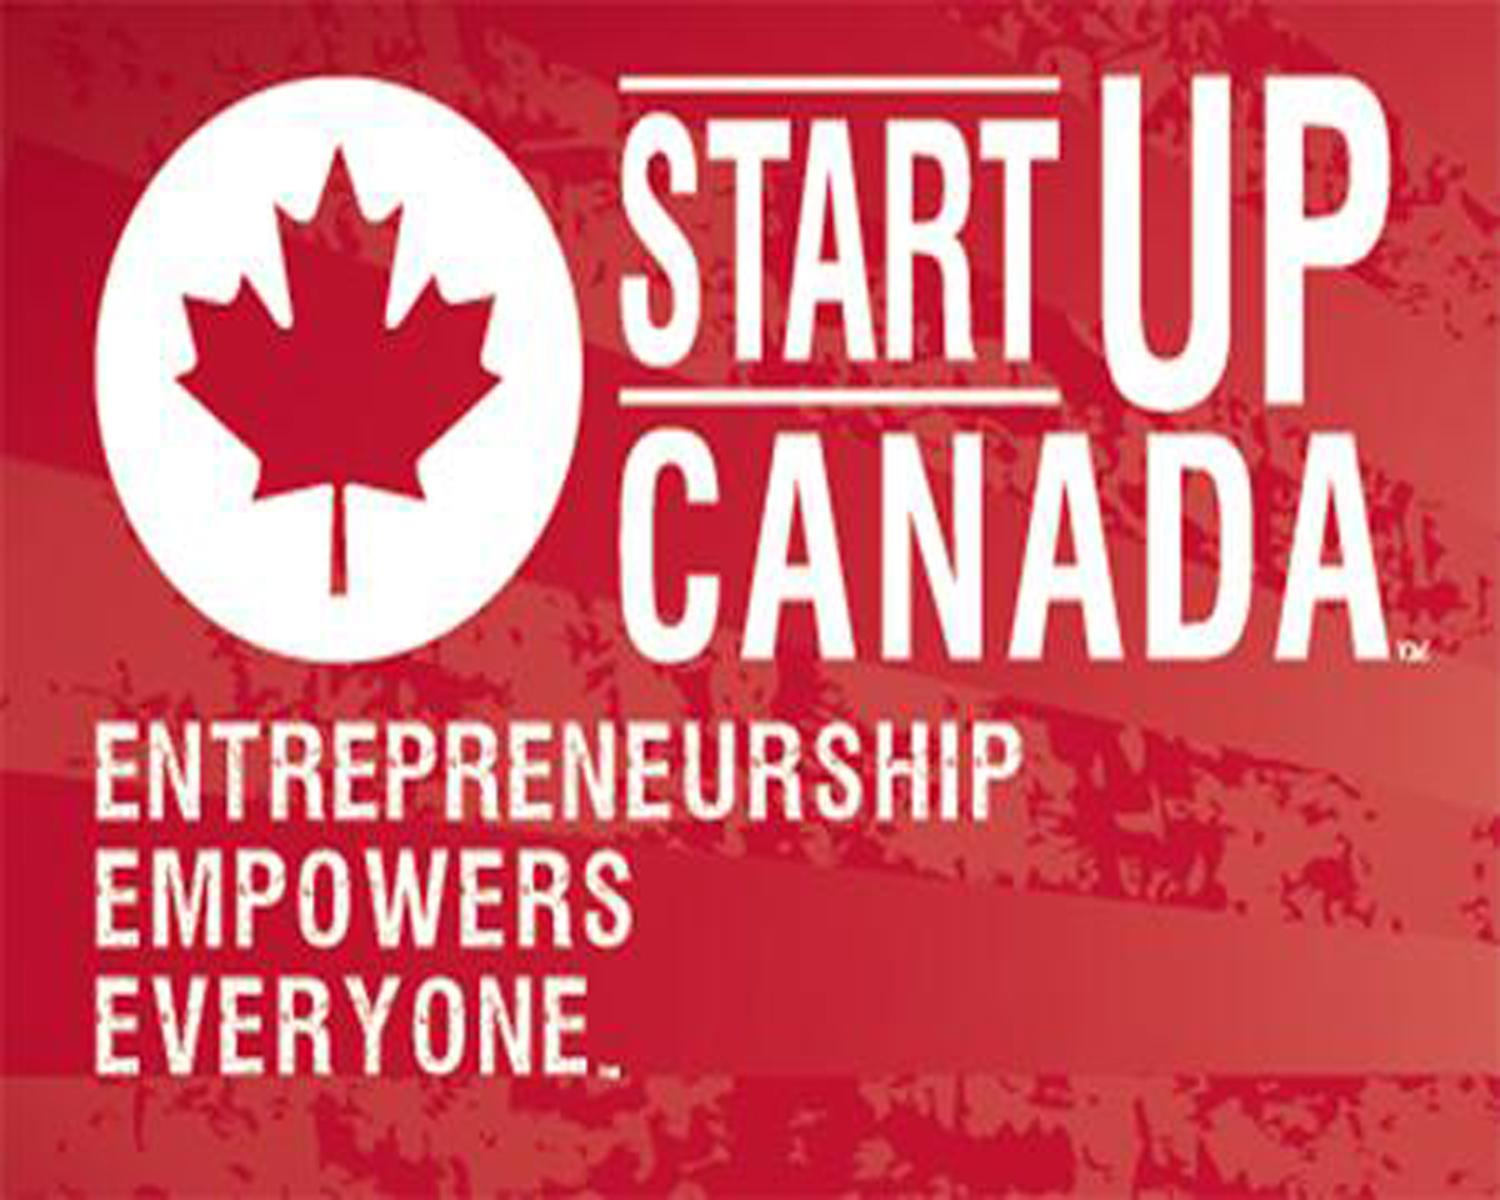 Immigration options in Canada for Entrepreneurs